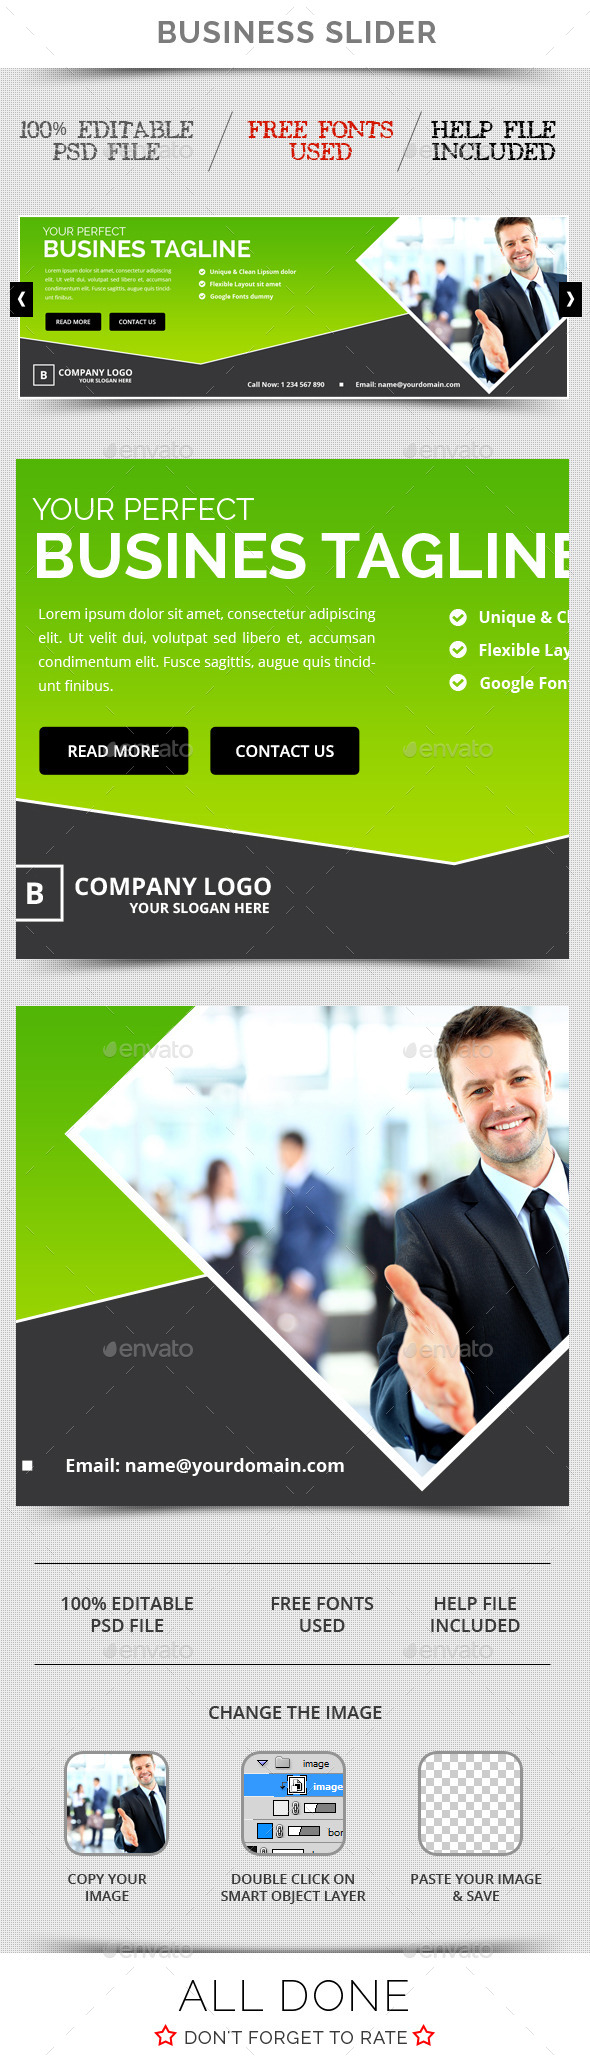 GraphicRiver Business Slider V21 11557527